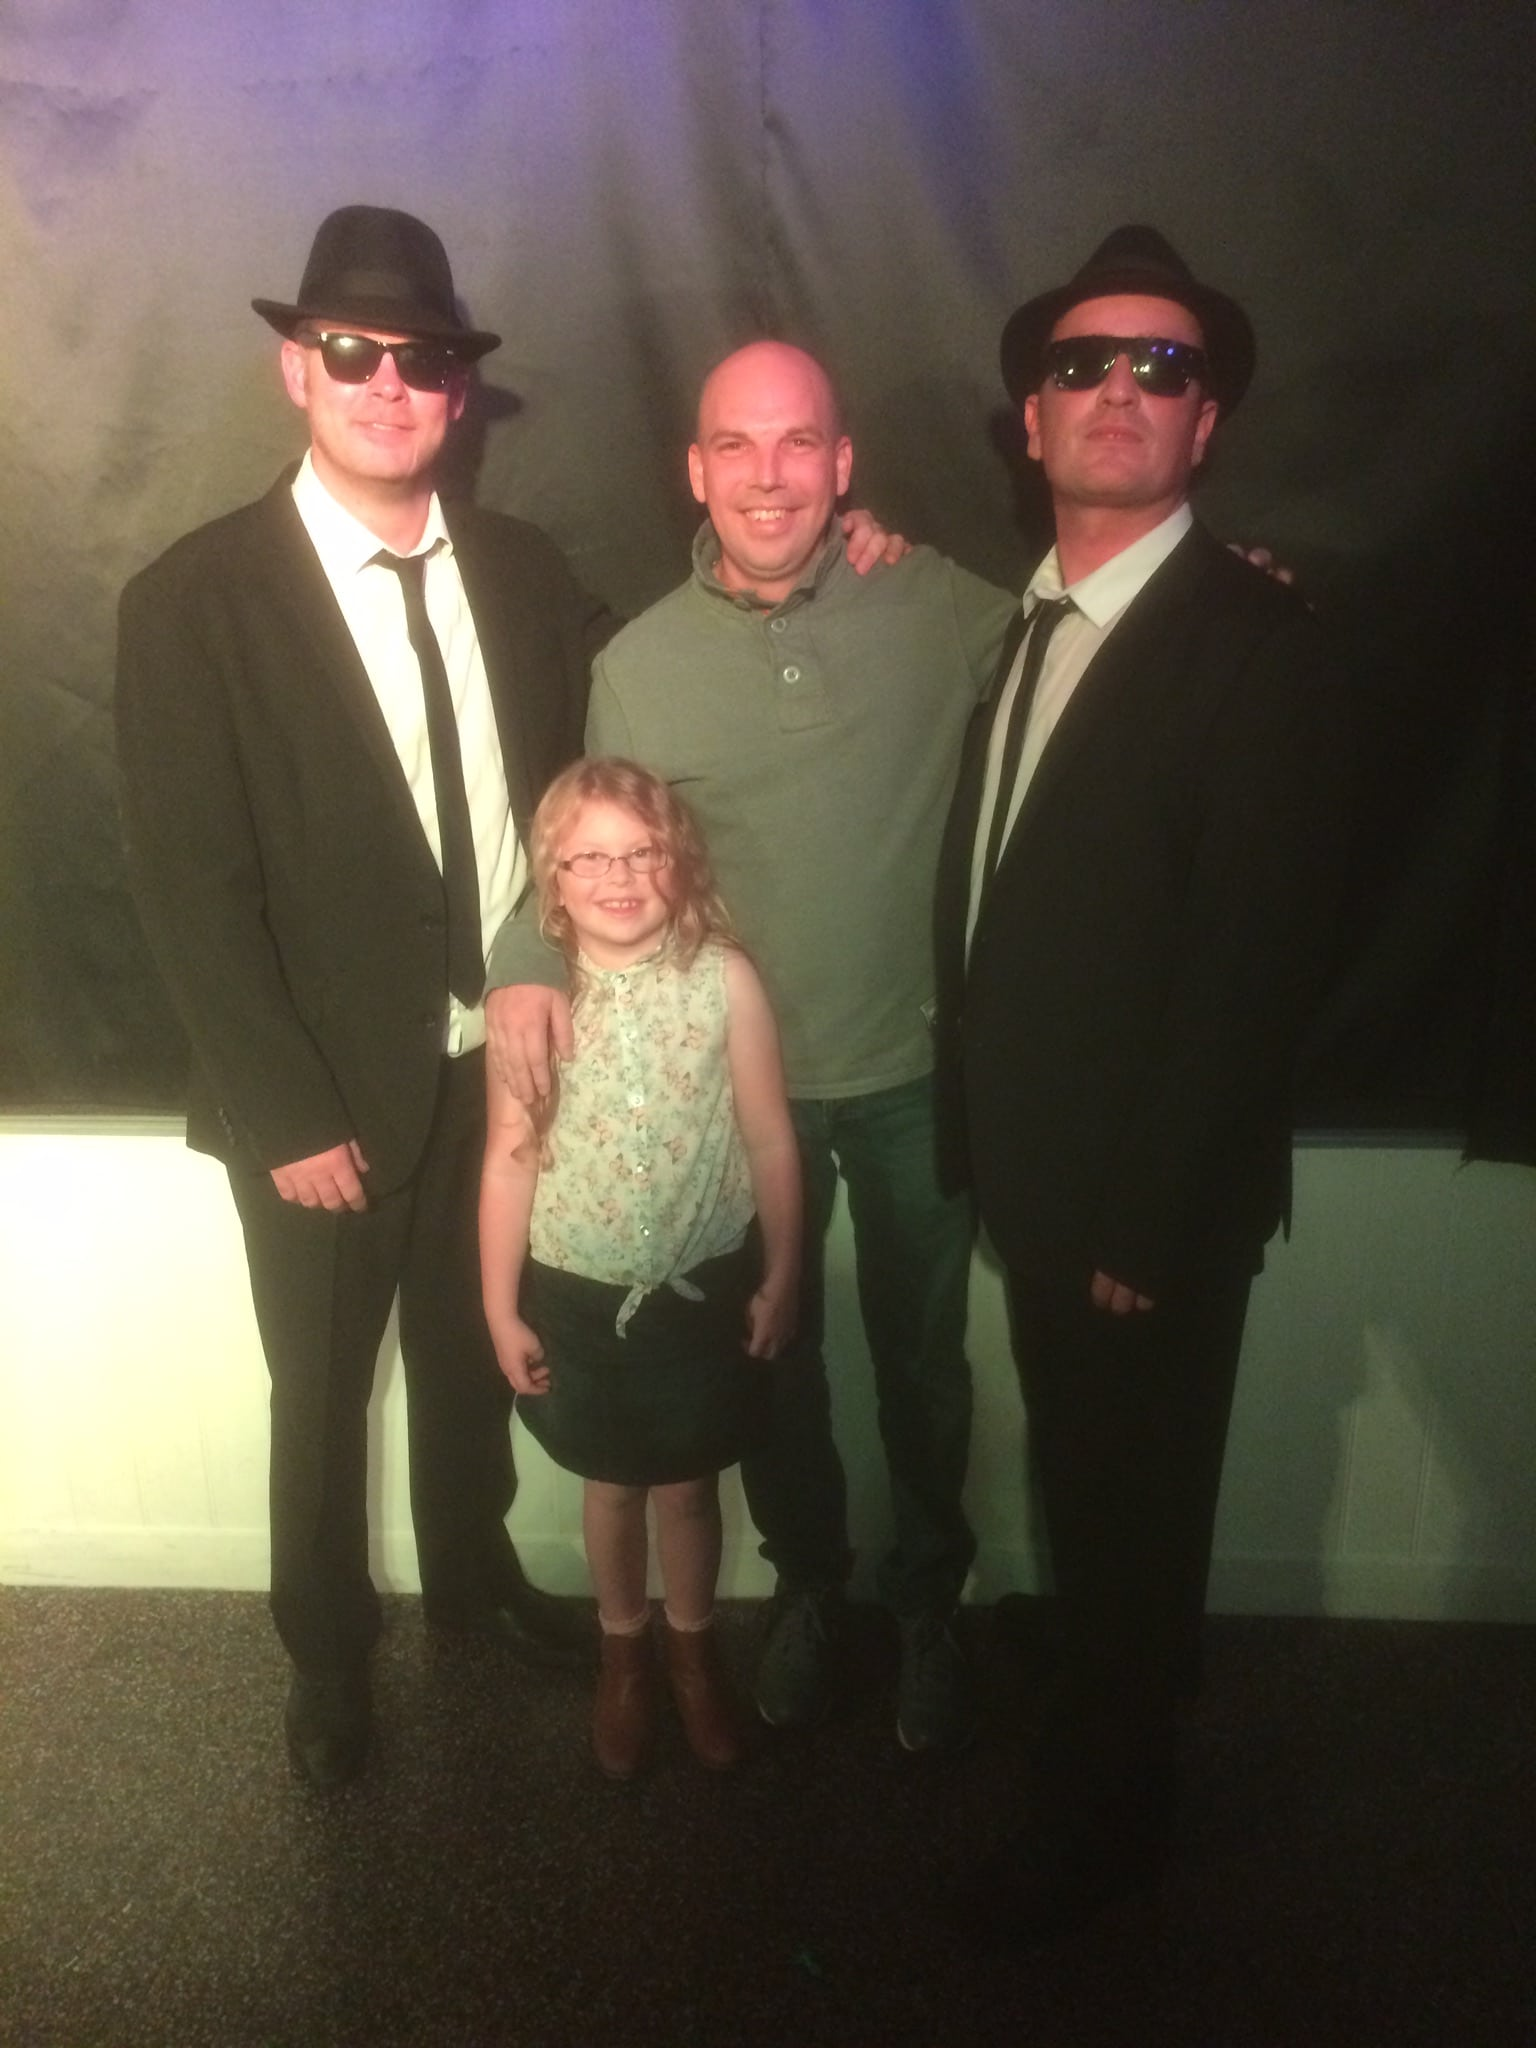 With blues brothers tribute act